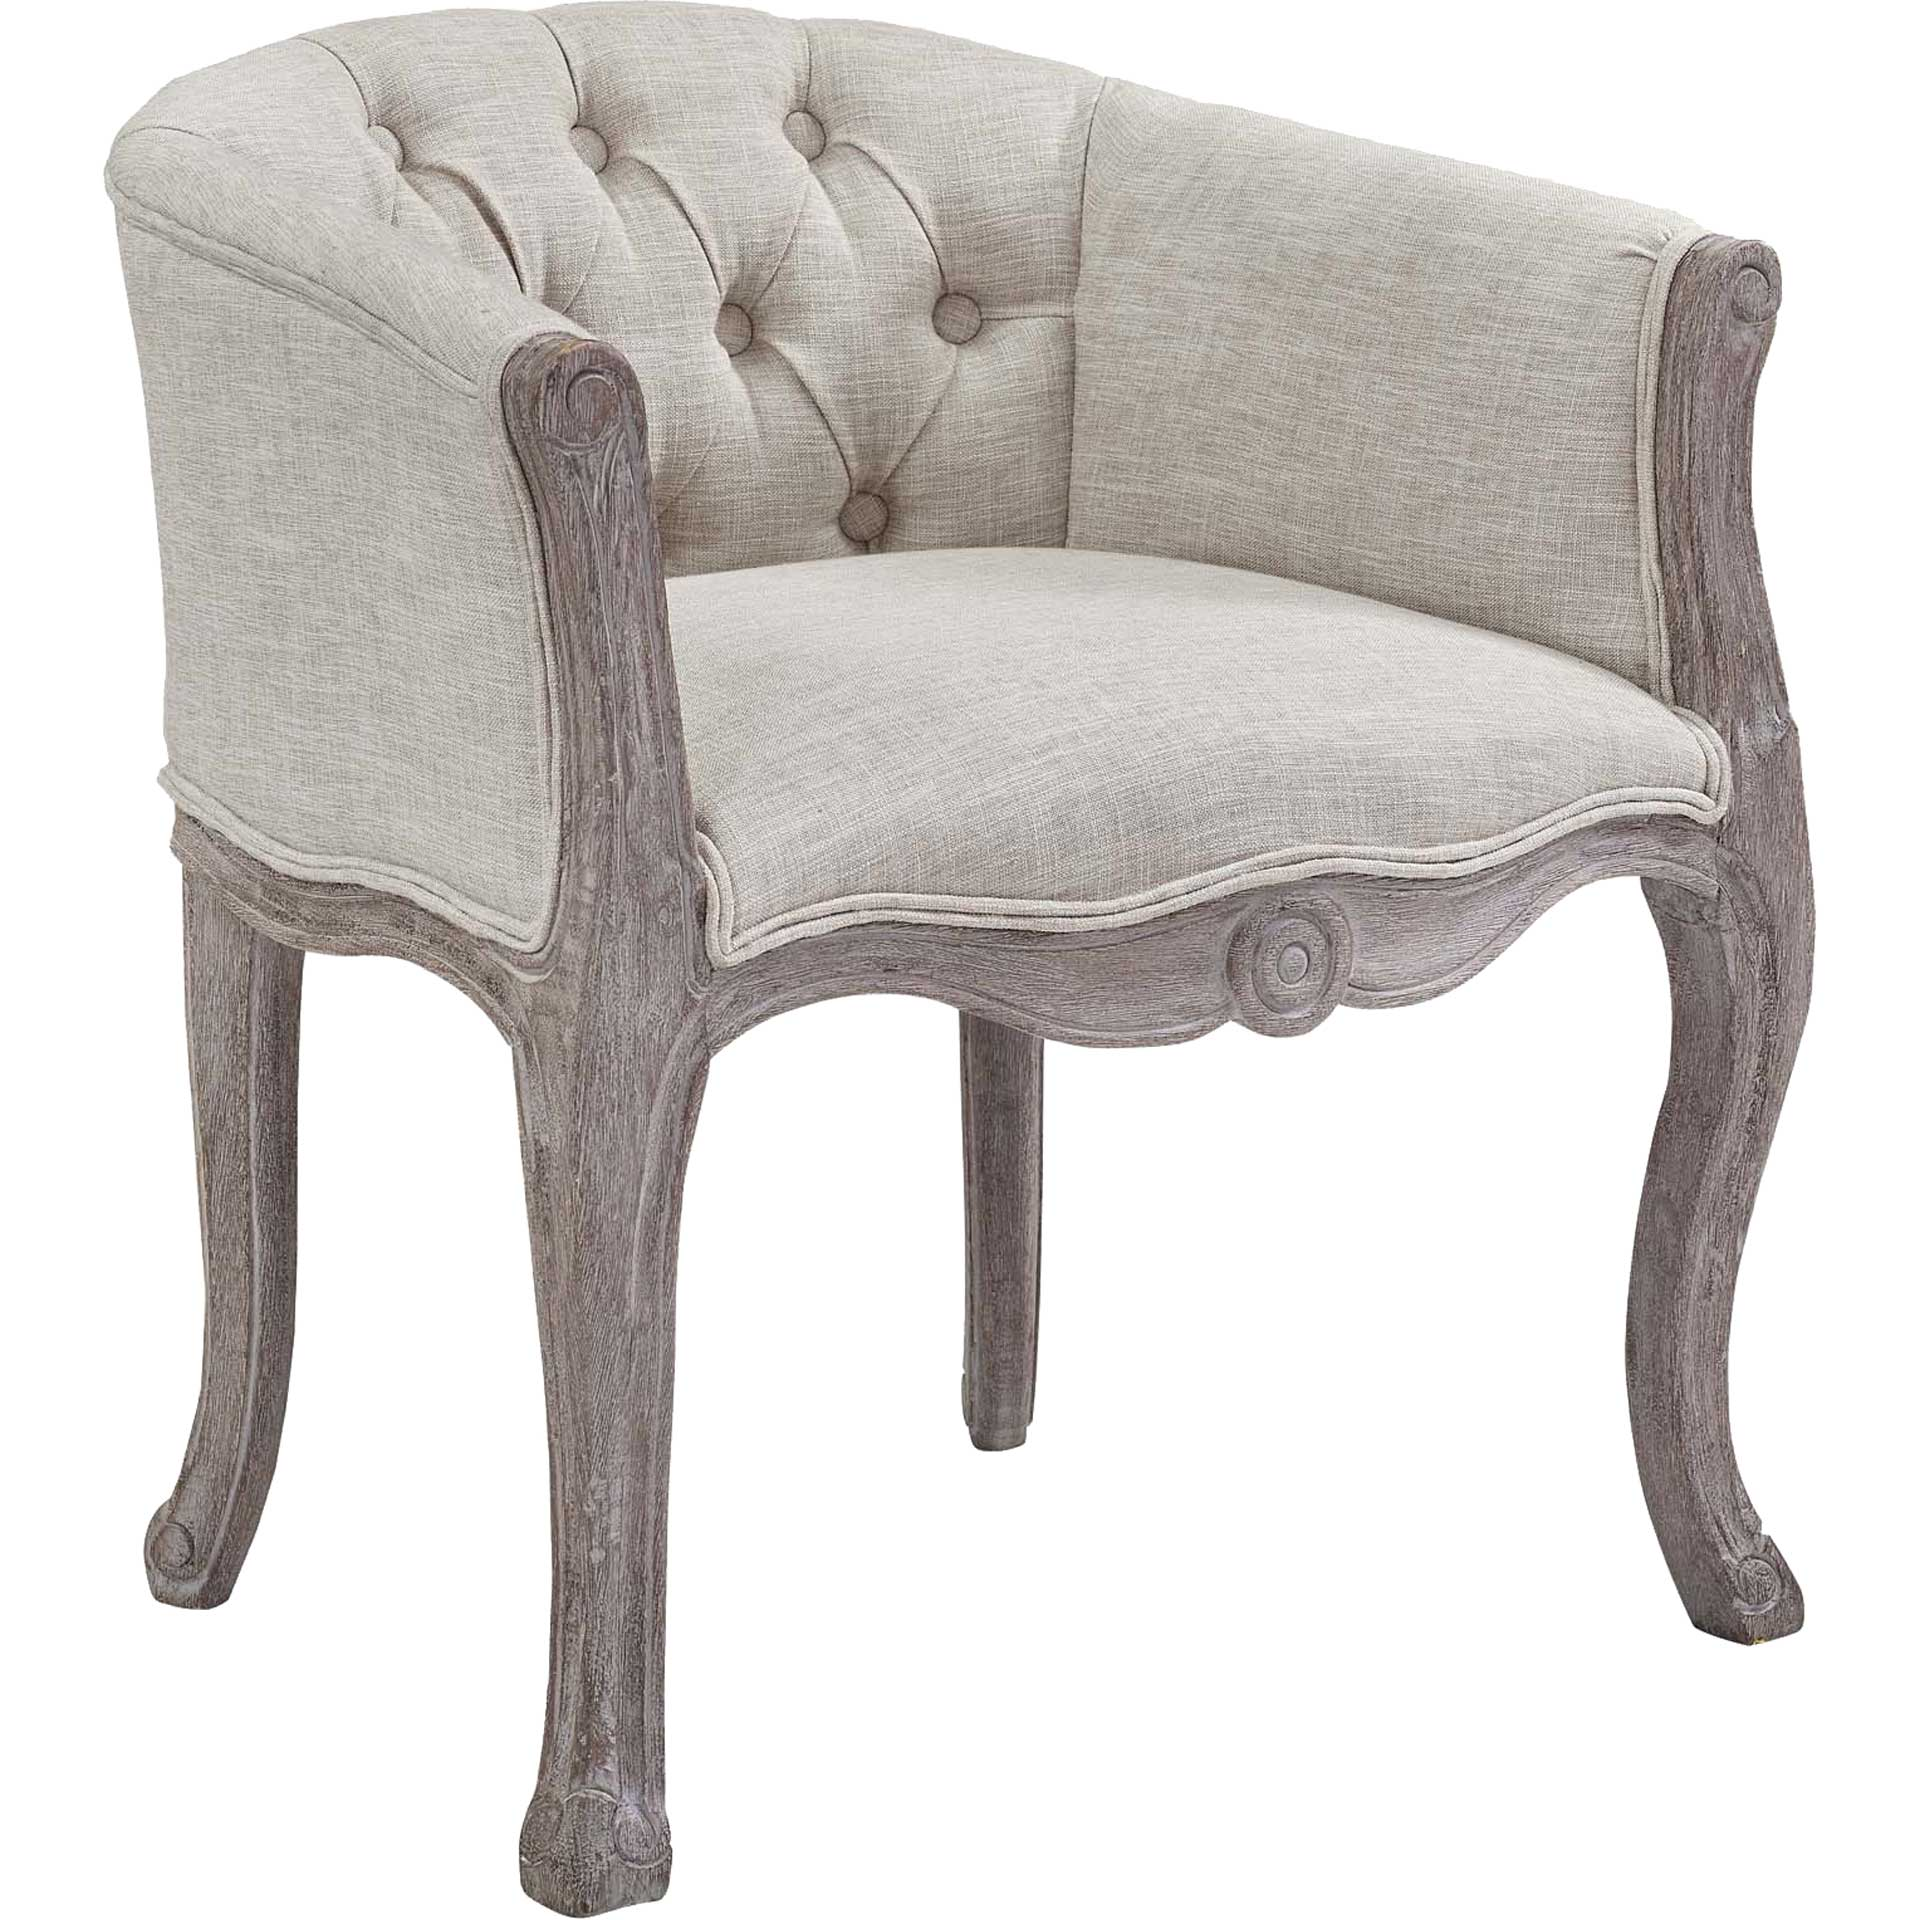 Class Upholstered Fabric Dining Armchair Beige